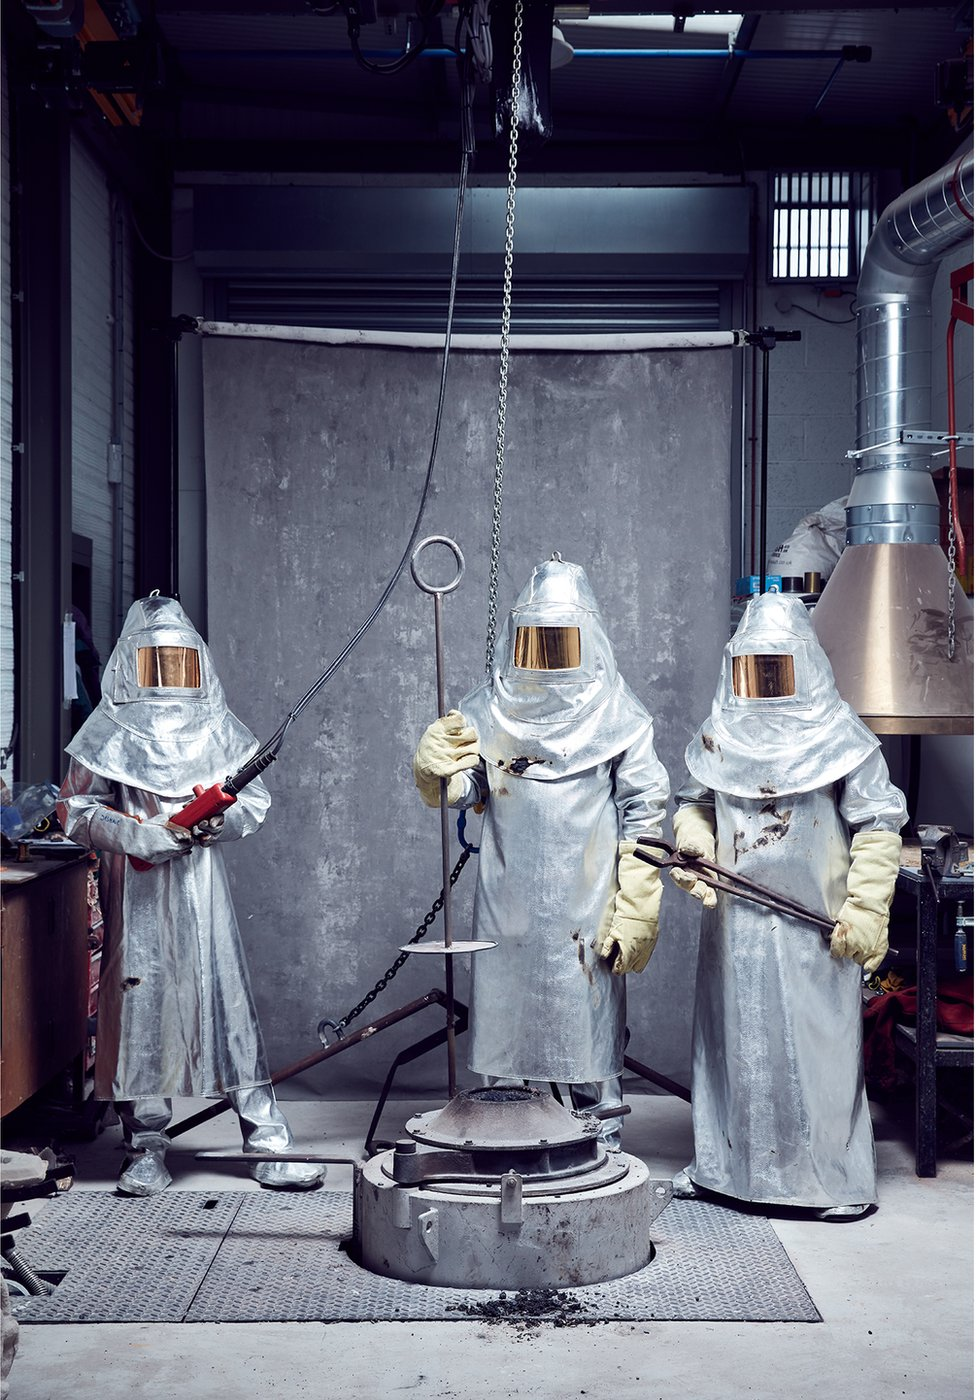 Three metal forgers stand in their protective equipment